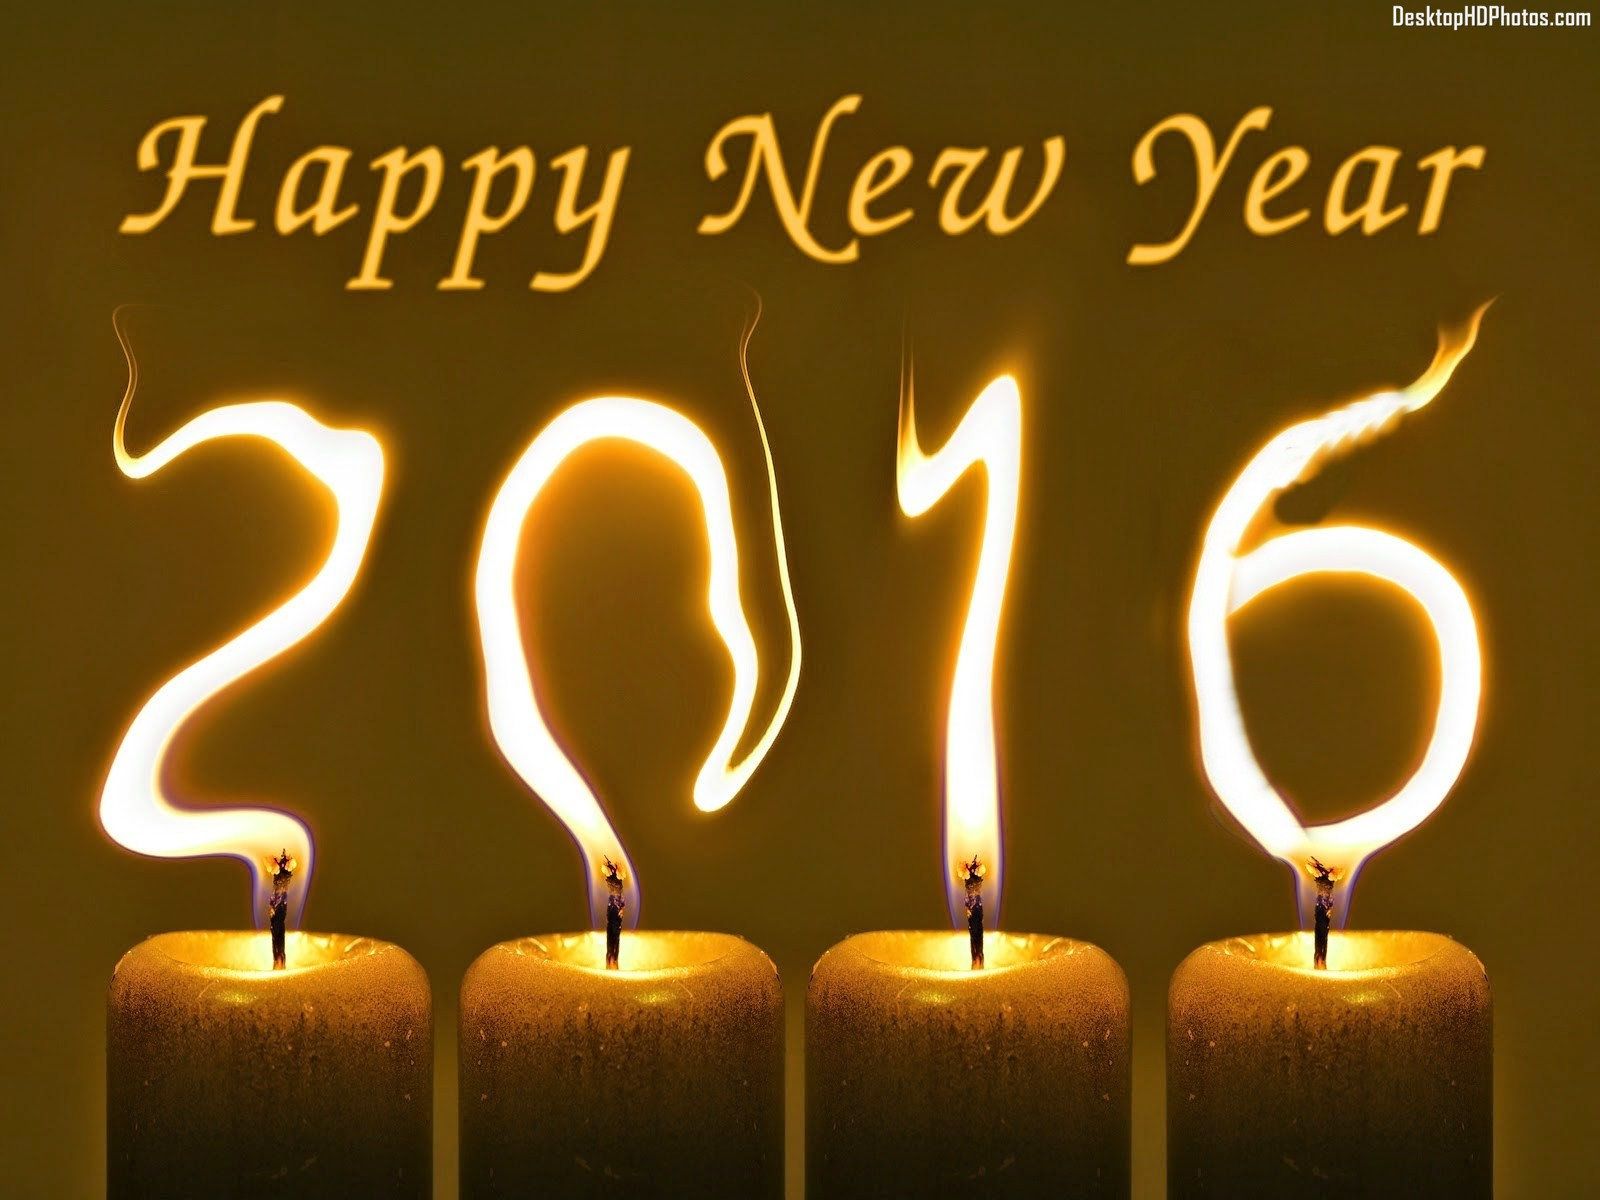 Wallpaper download new year - You Can Also Download All These Wallpapers Form The All In One Zip File For New Year 2016 Wallpapers